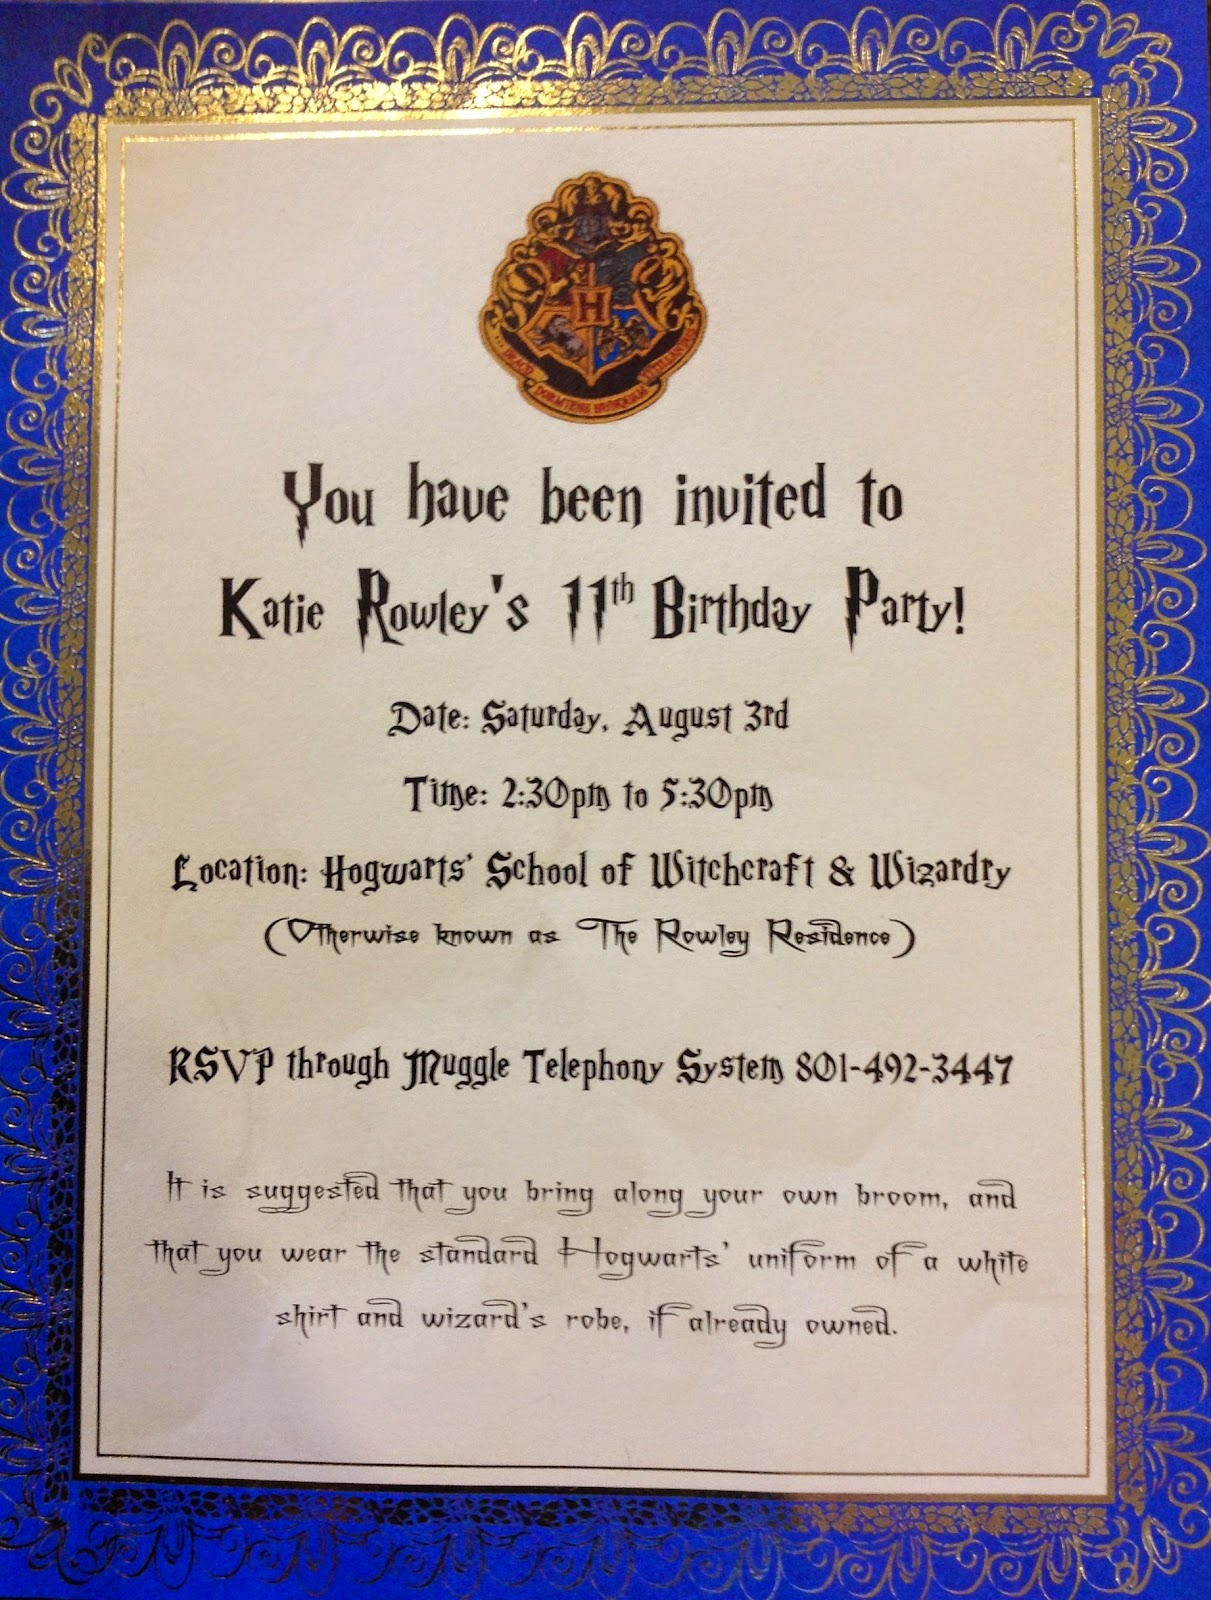 Harry Potter Party Invitations was very inspiring ideas you may choose for invitation ideas